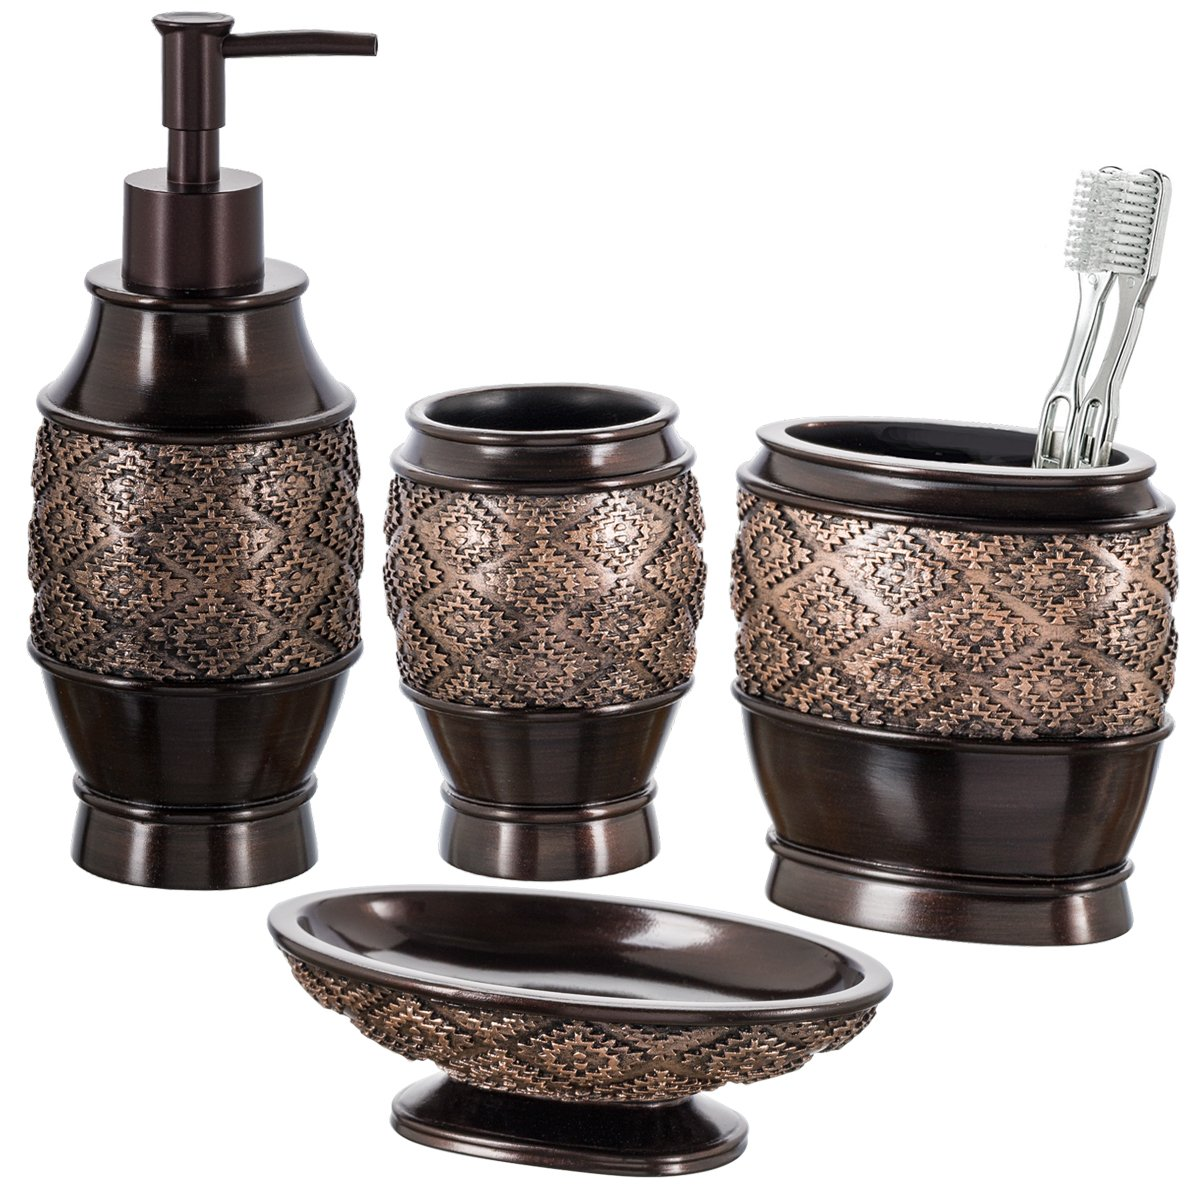 Attrayant Creative Scents Dublin 4 Piece Bathroom Accessories Set, Includes  Decorative Countertop Soap Dispenser, Dish, Tumbler, Toothbrush Holder,  Resin Vanity ...